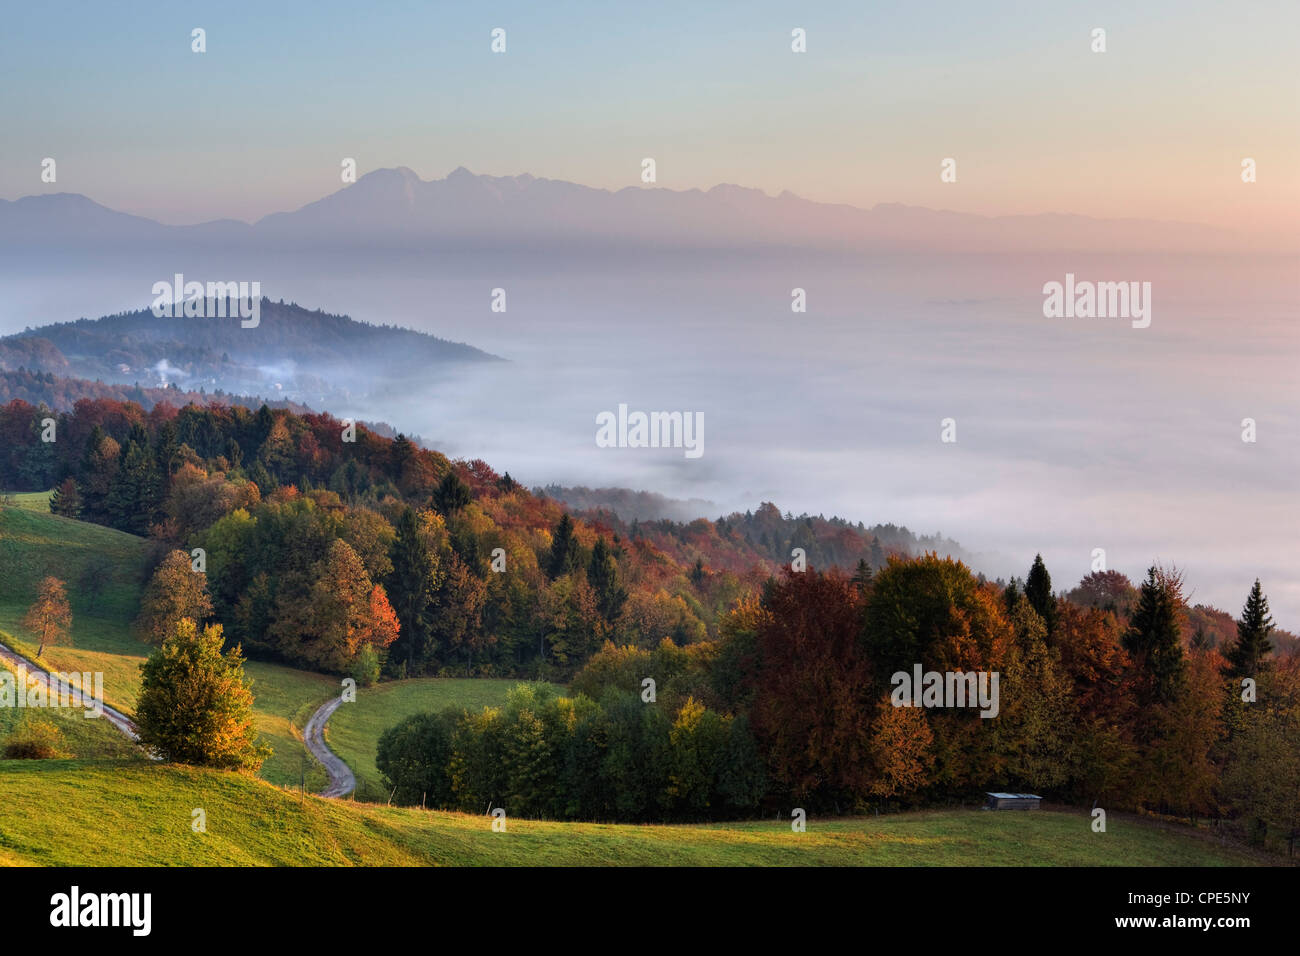 Mist over the Ljubljana Basin at sunrise in autumn, Central Slovenia, Slovenia, Europe - Stock Image